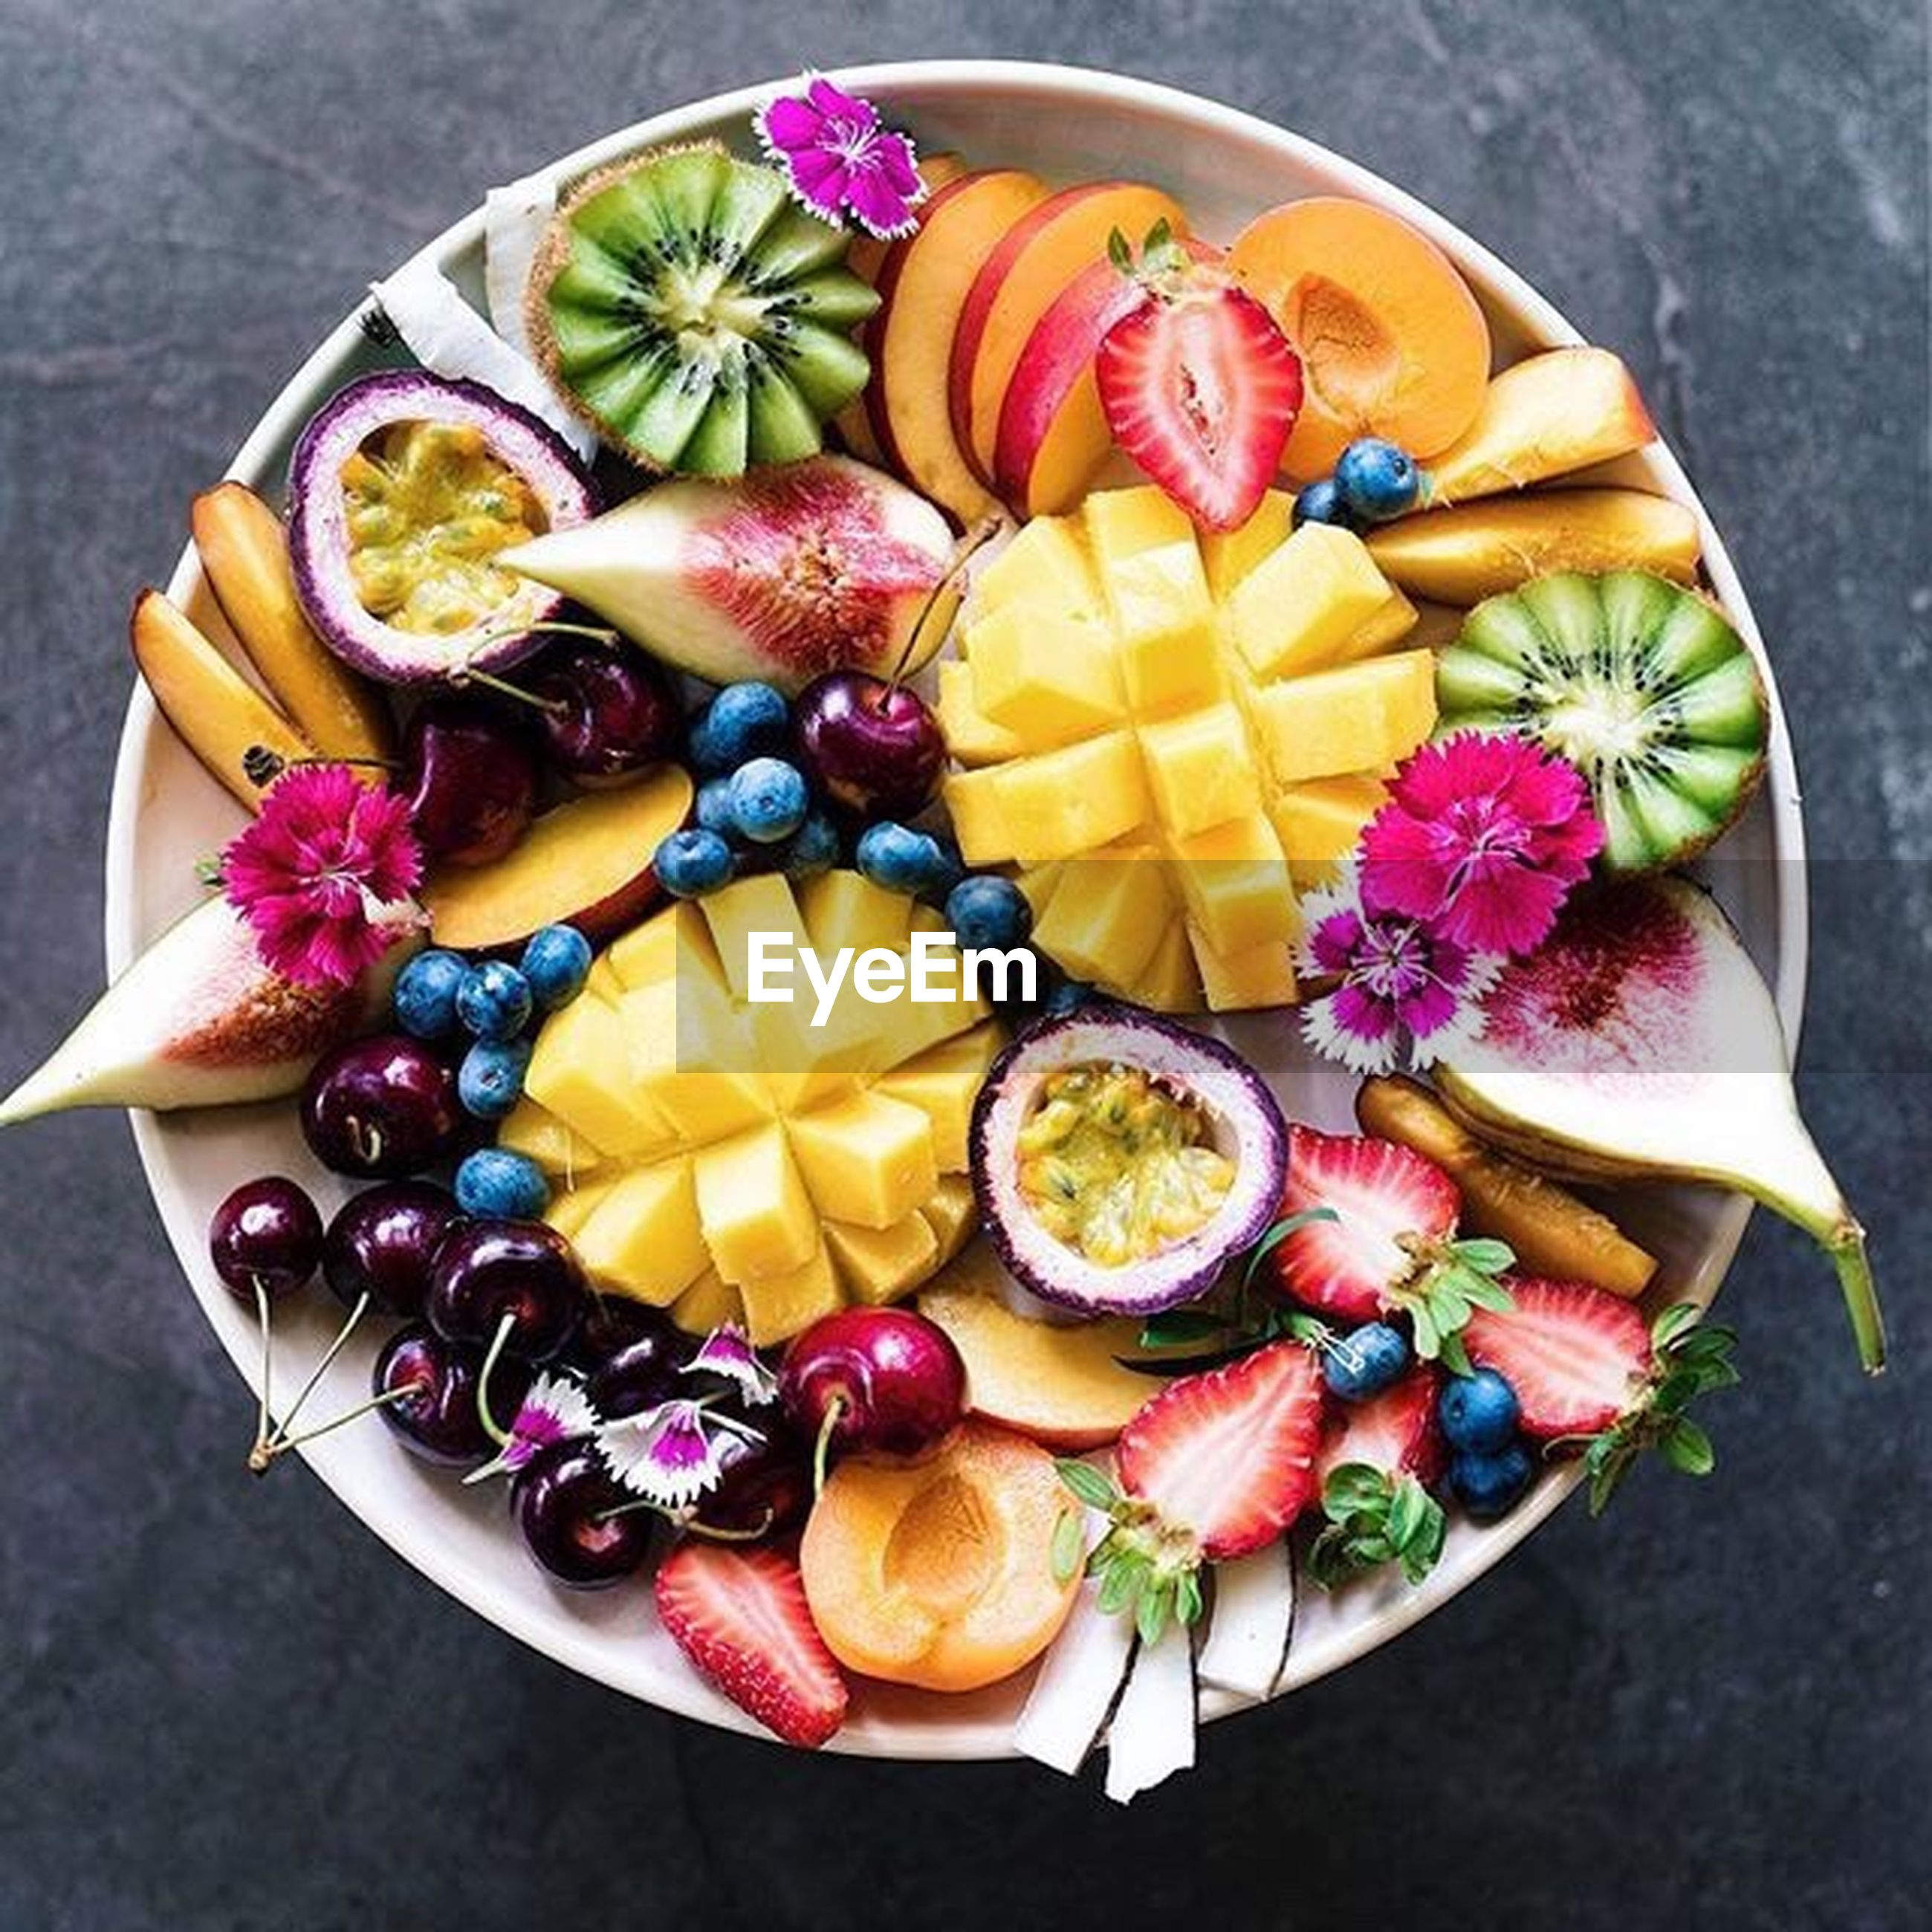 food and drink, multi colored, food, freshness, high angle view, indoors, plate, directly above, large group of objects, fruit, variation, colorful, person, abundance, choice, creativity, arrangement, ready-to-eat, indulgence